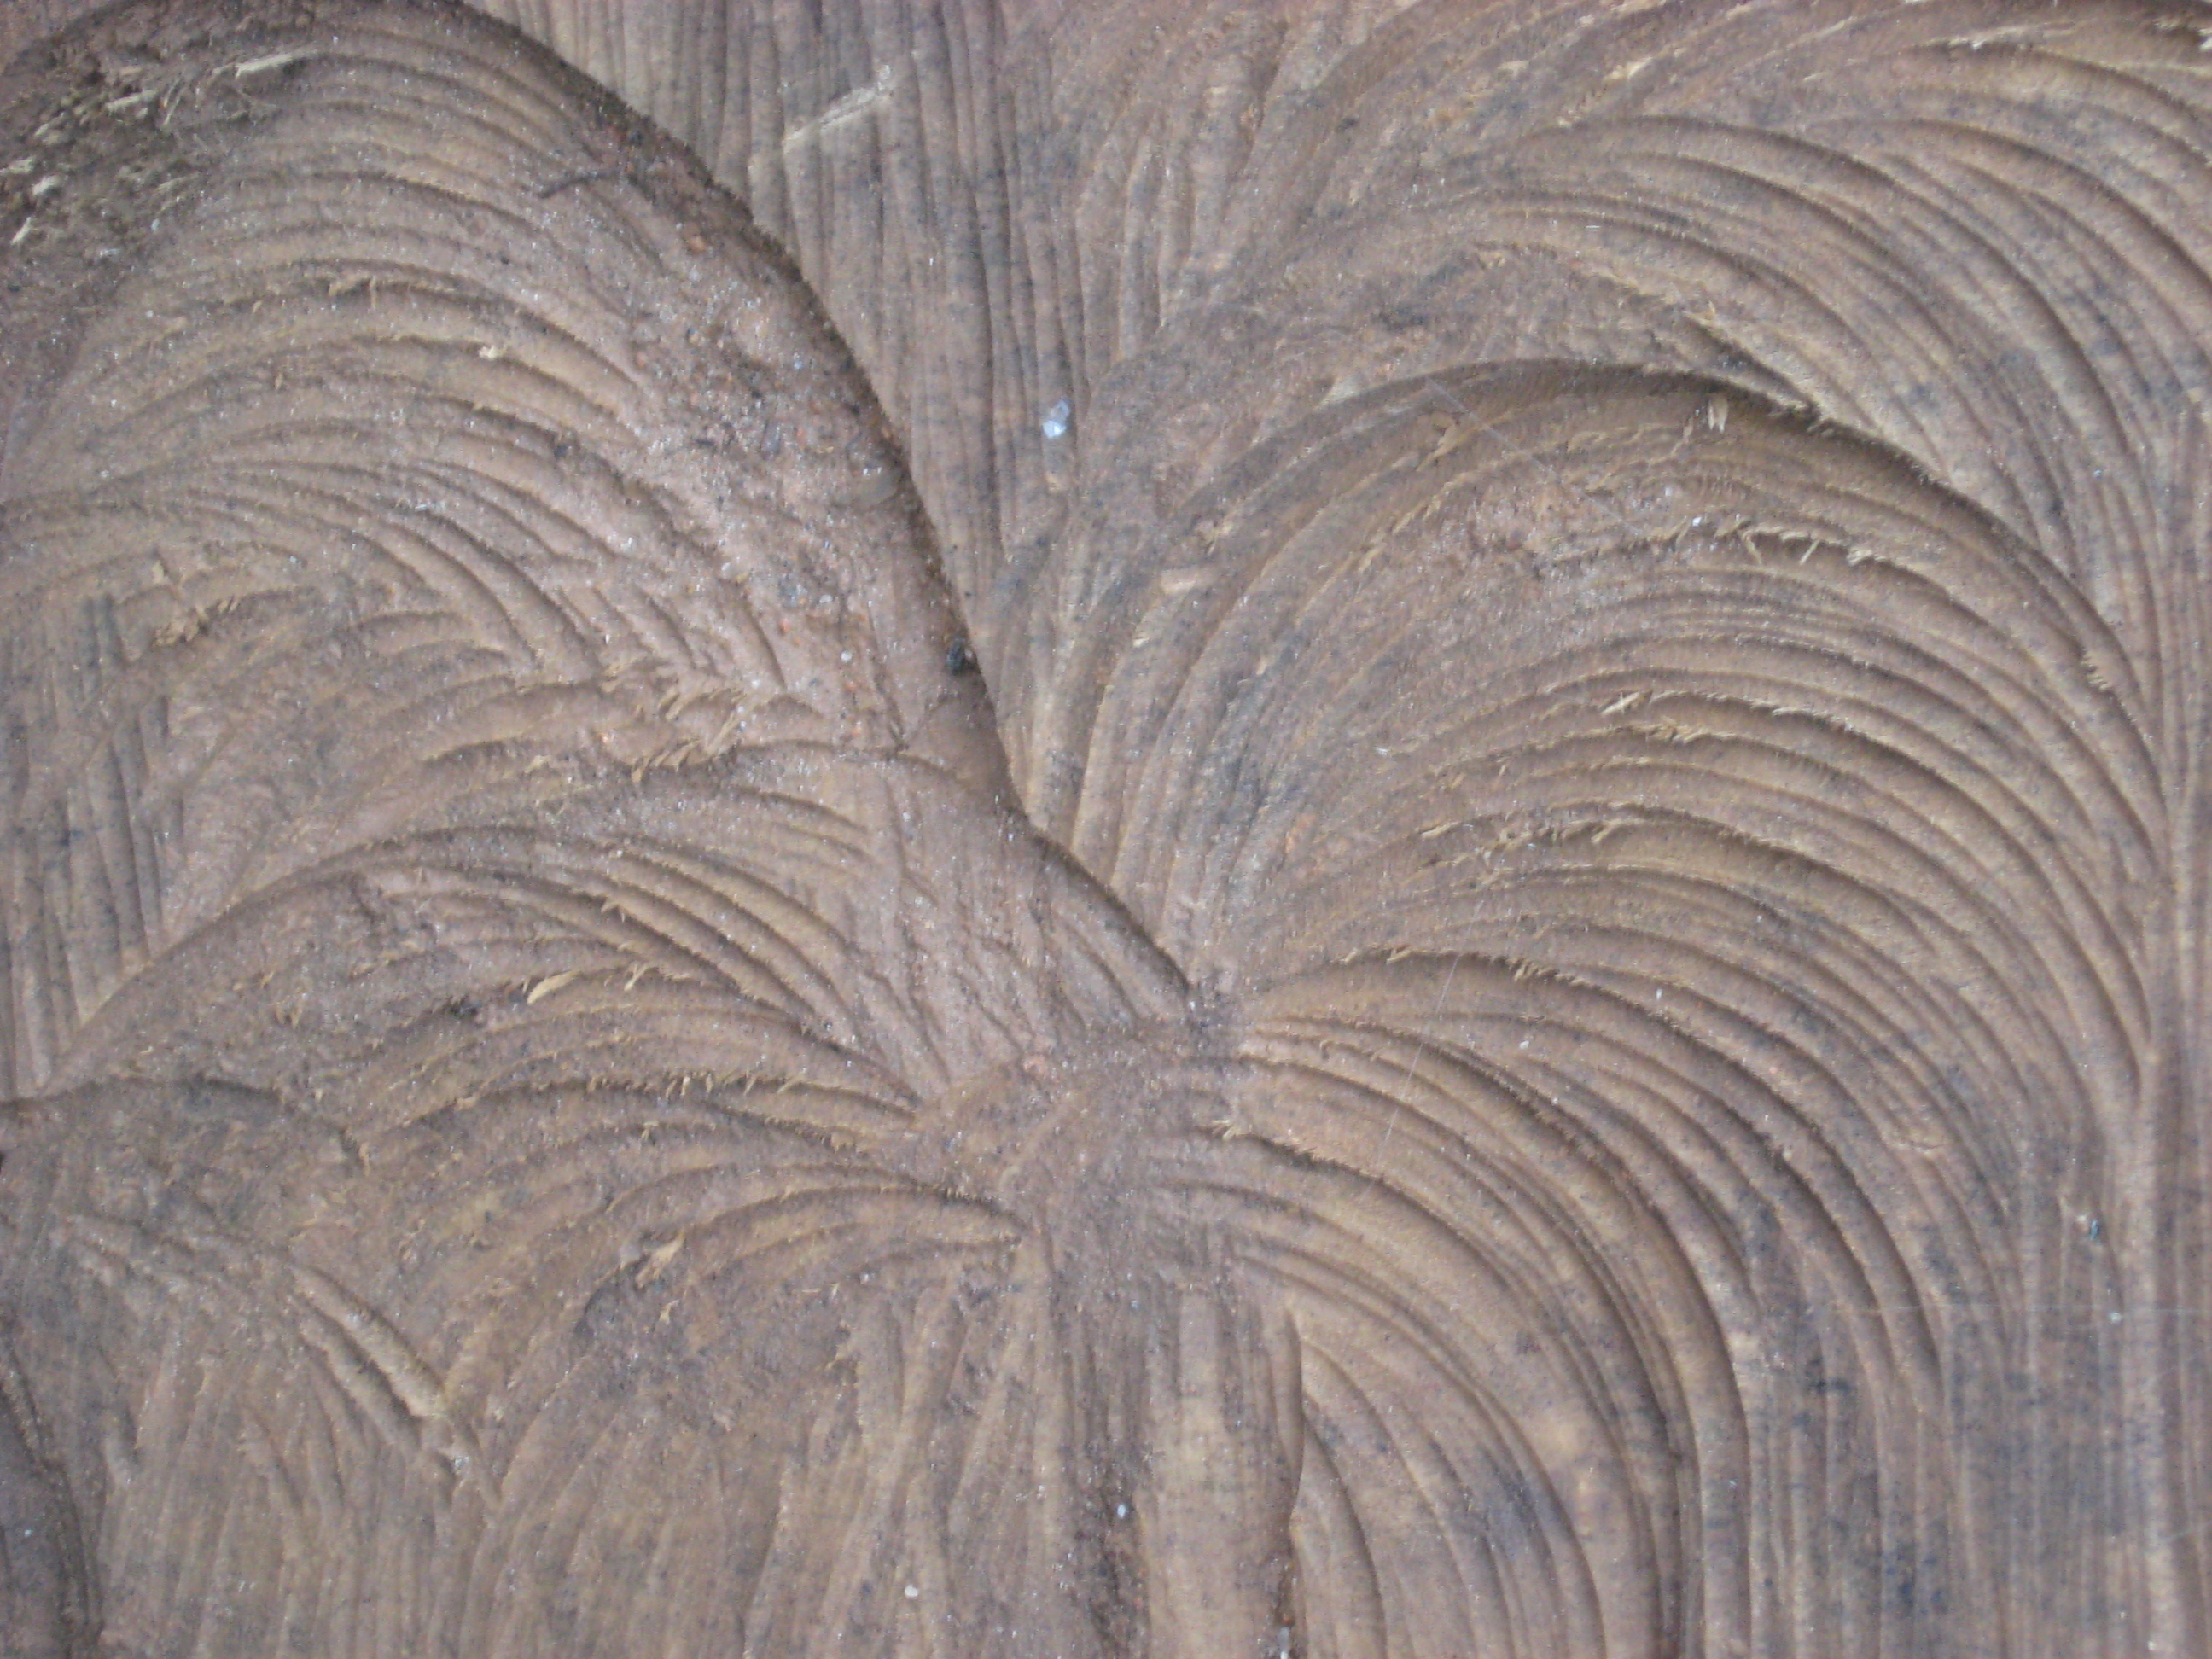 Texture Sawn Wood by markopolio-stock